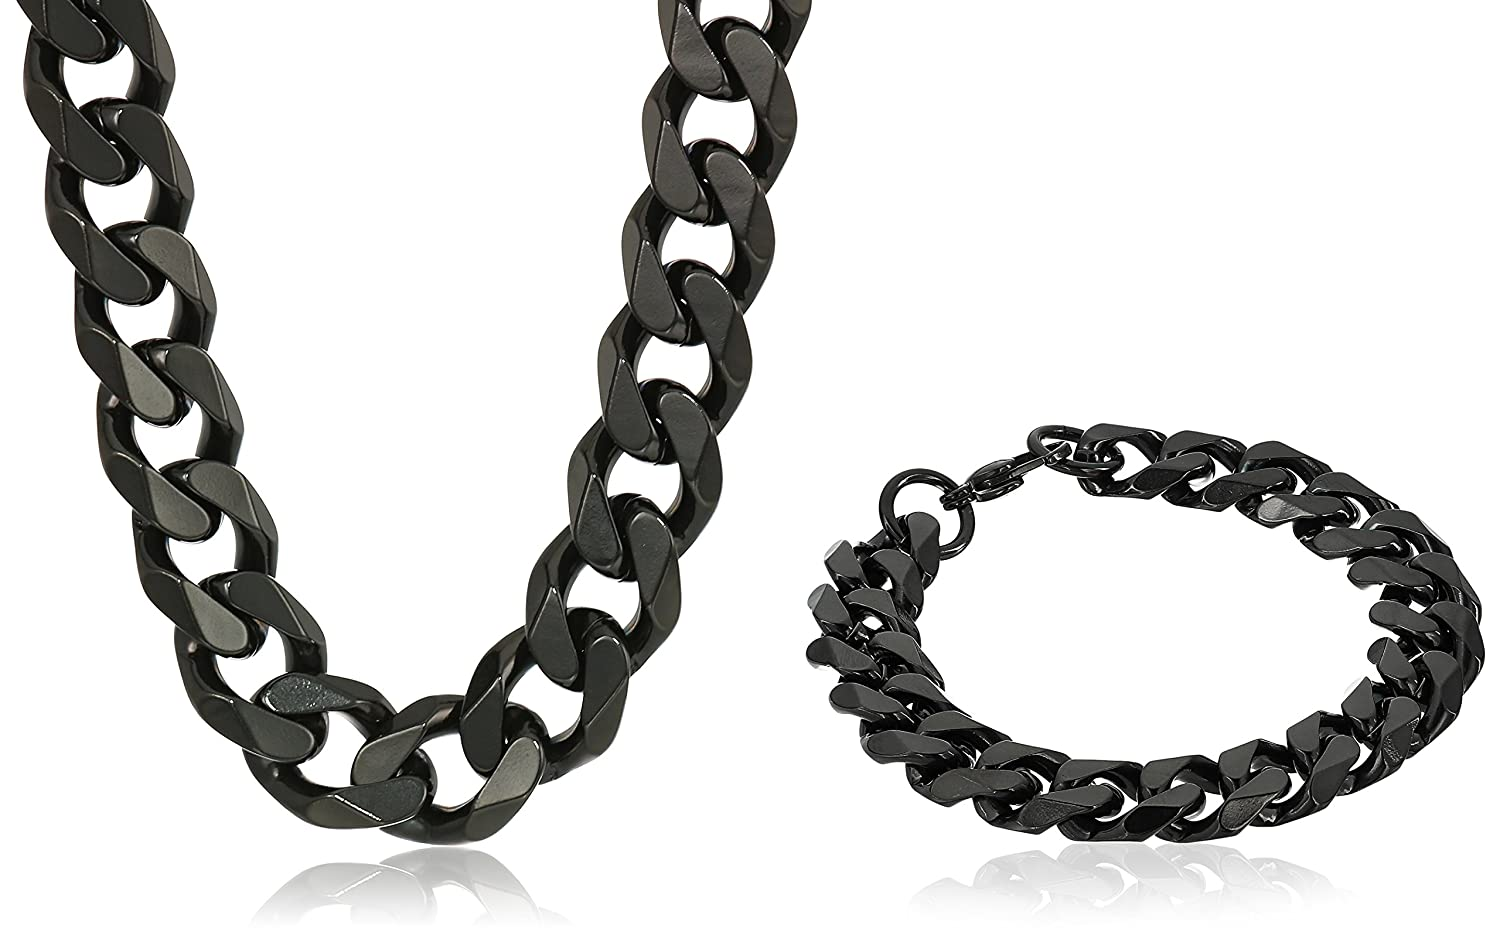 a639732cb86a2 Crucible Jewelry Mens Black IP Stainless Steel Cuban Curb Chain ...